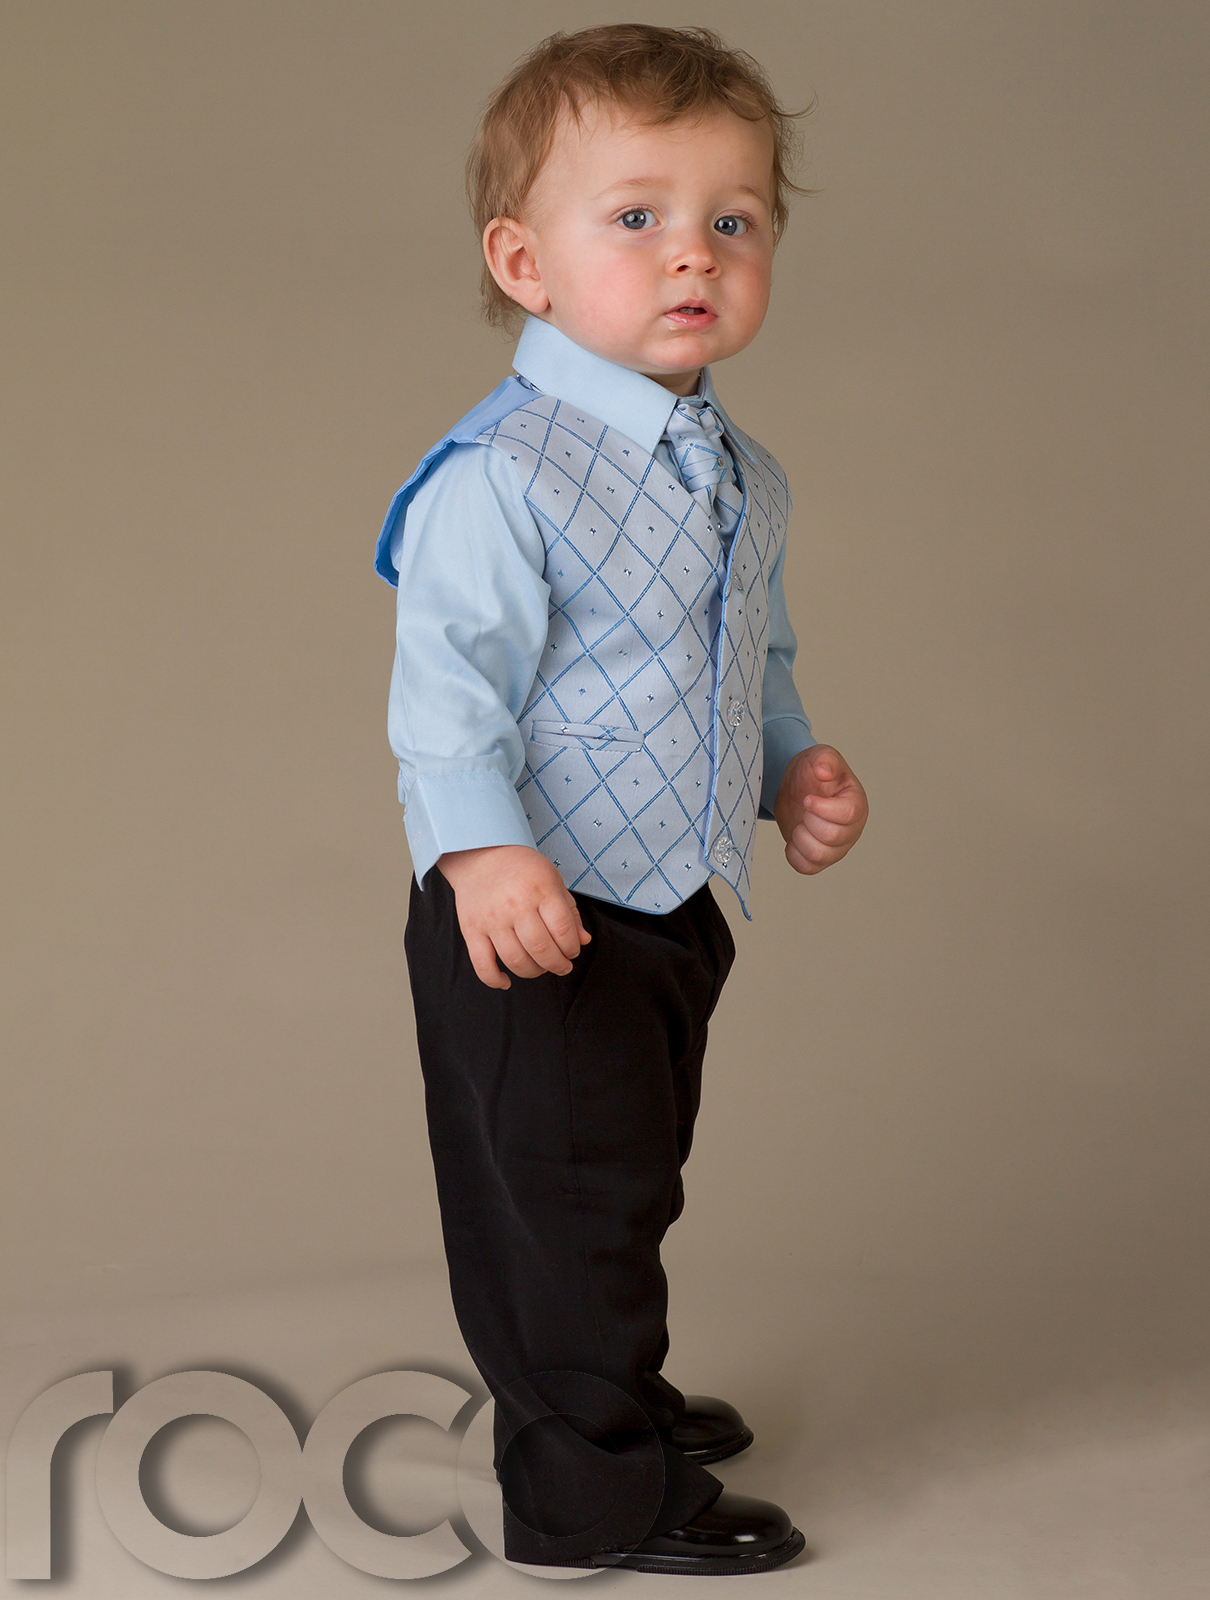 Free shipping on baby boy clothes at celebtubesnews.ml Shop bodysuits, footies, rompers, coats & more clothing for baby boys. Free shipping & returns.